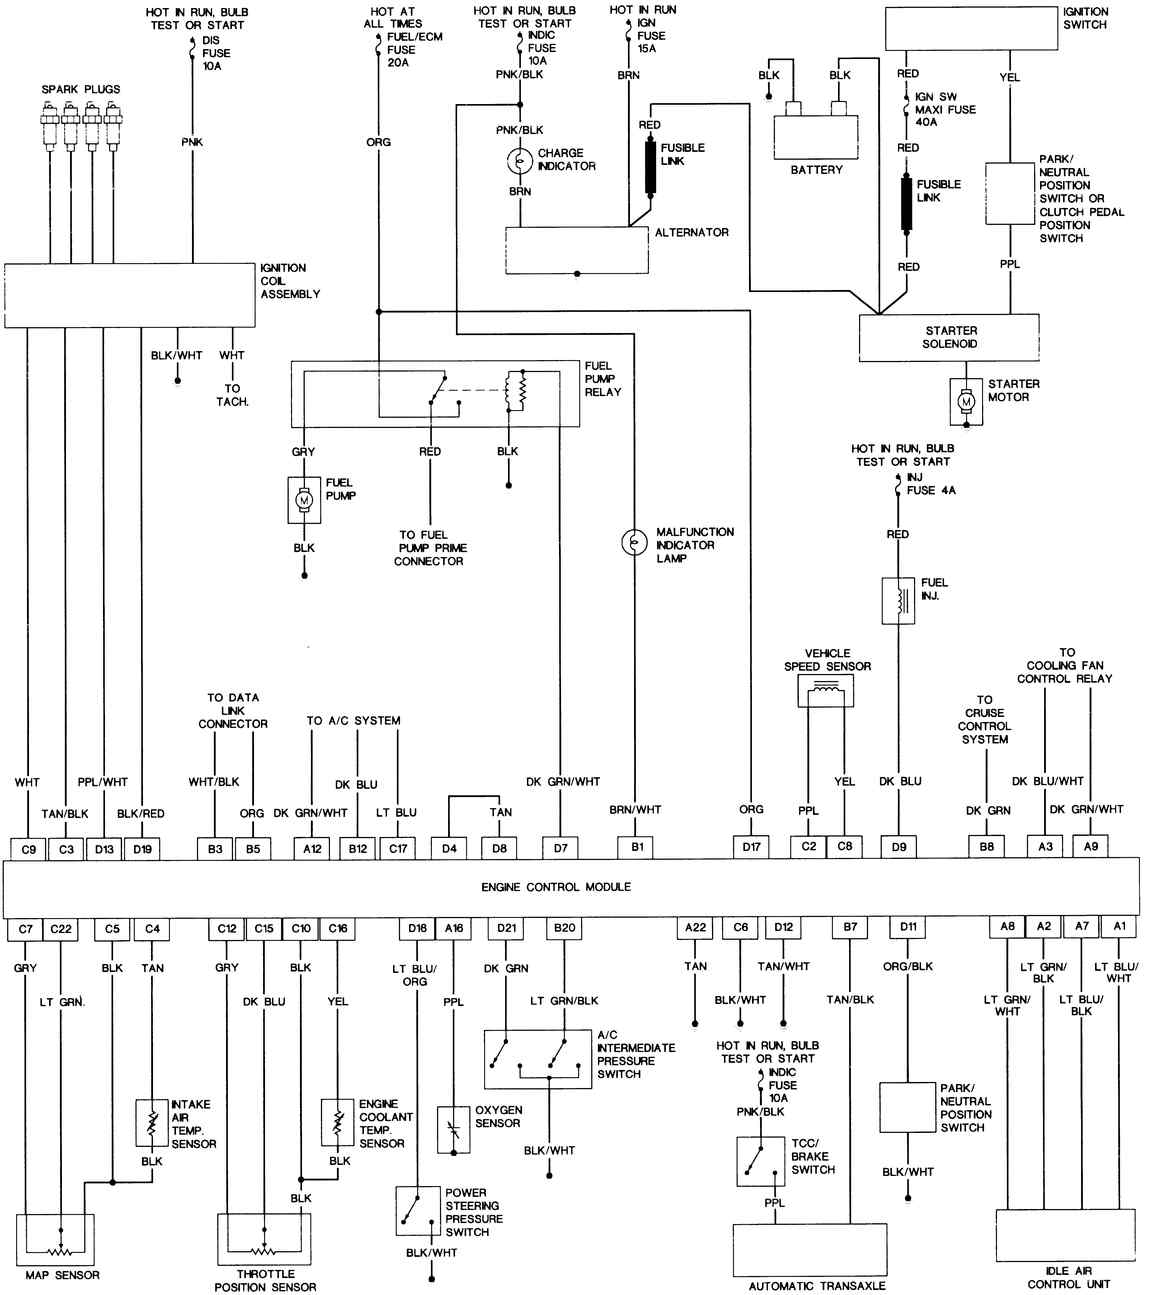 1995 Gmc Sierra 2500 Wiring Diagram